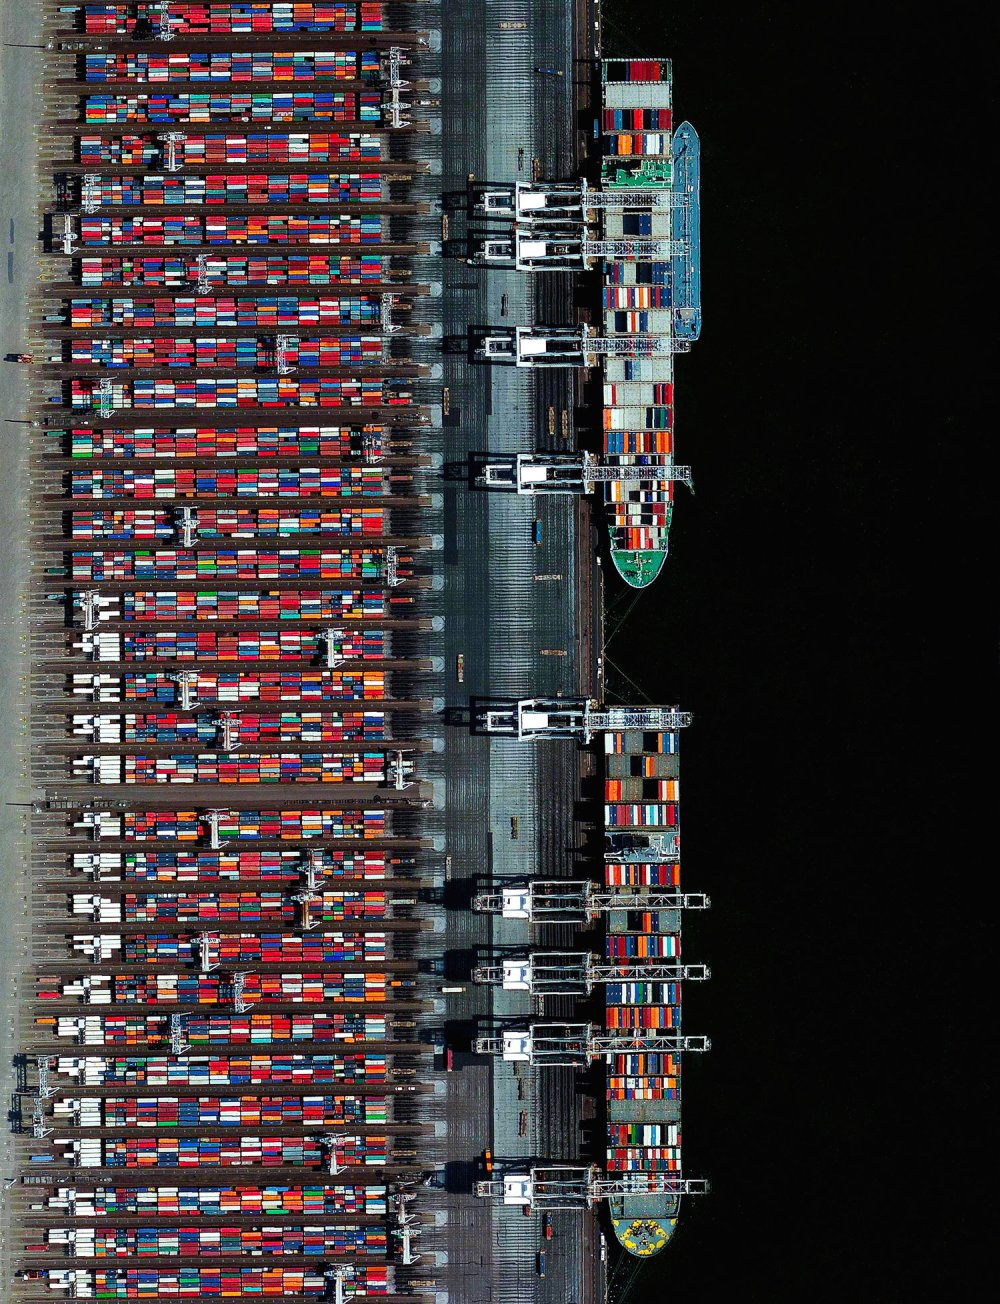 "The Port of Rotterdam — one of the first Overviews ever published on Daily Overview. Today marks our 1500th post on Instagram! I started this project because I believed the Overview perspective not only offered a means to look at our planet like never before, but was also something that could bring people together. To see where the project is now, nearly four years and 1500 posts later, has exceeded all of my wildest expectations. A sincere thank you from the bottom of my heart to everyone who has shared the images, purchased a copy of ""Overview,"" or simply followed along. Here's to the next 1500 posts! -- Benjamin Grant  51°53'06.0""N, 4°17'12.1""E  Source imagery: DigitalGlobe"